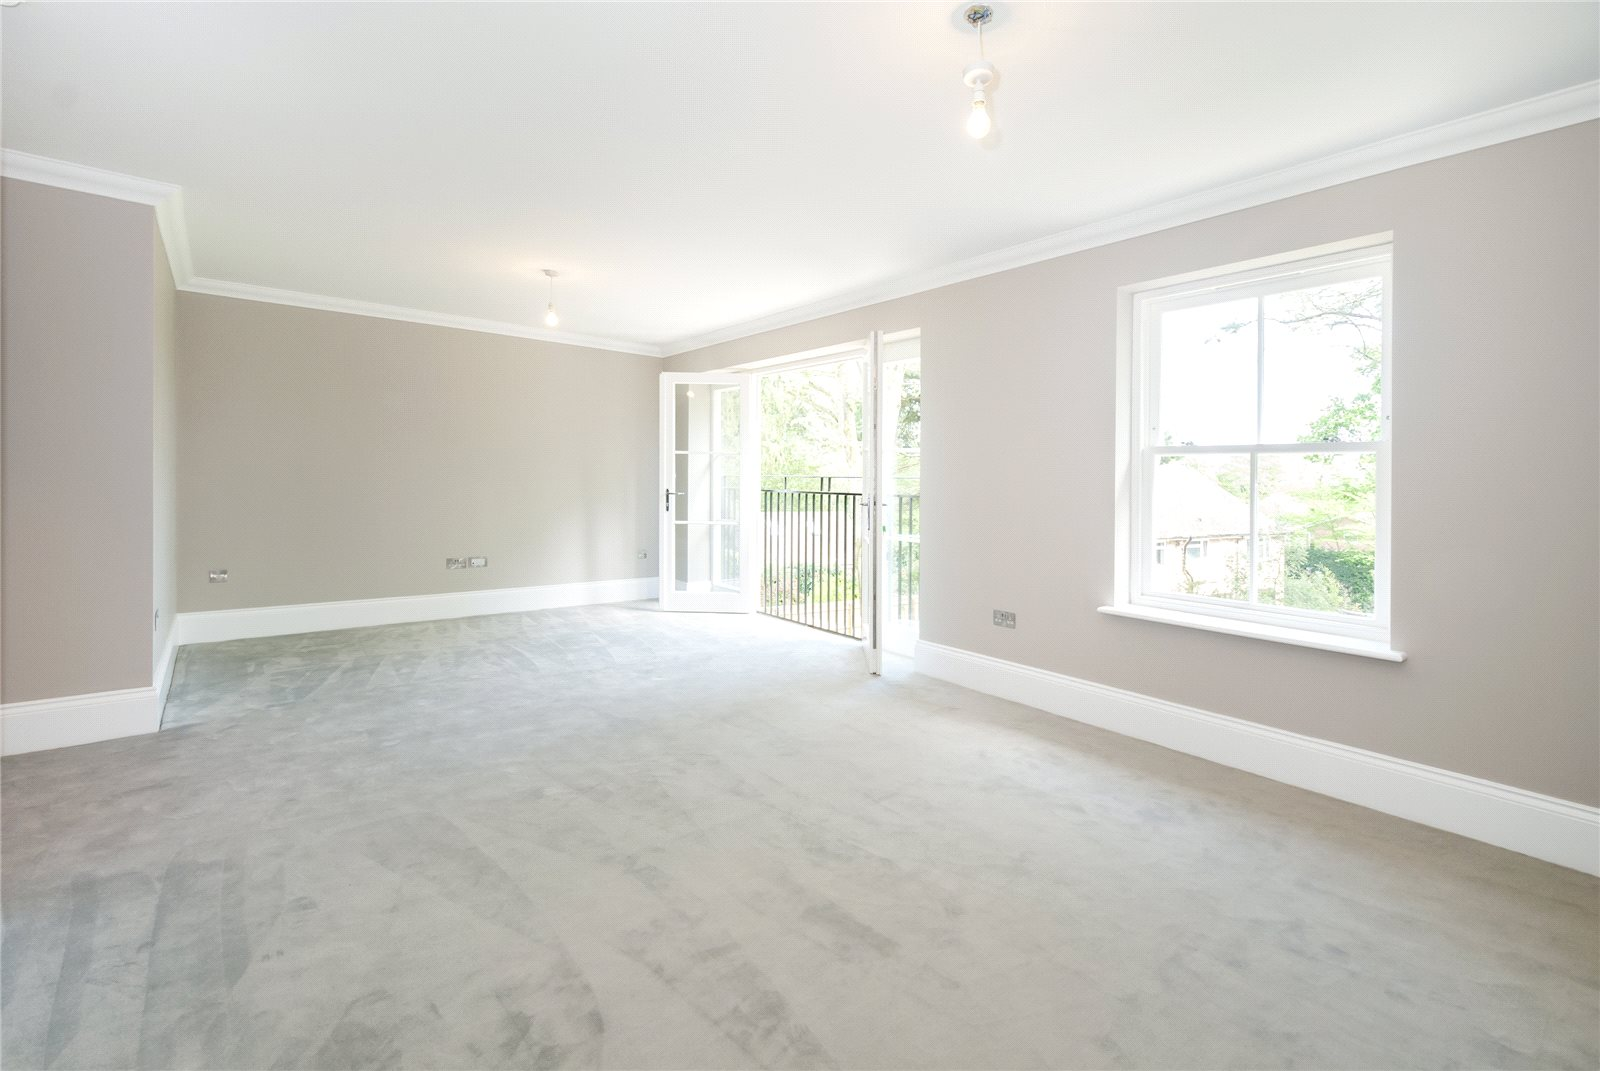 Additional photo for property listing at Refined II, South Park Drive, Gerrards Cross, Buckinghamshire, SL9 Gerrards Cross, Engeland